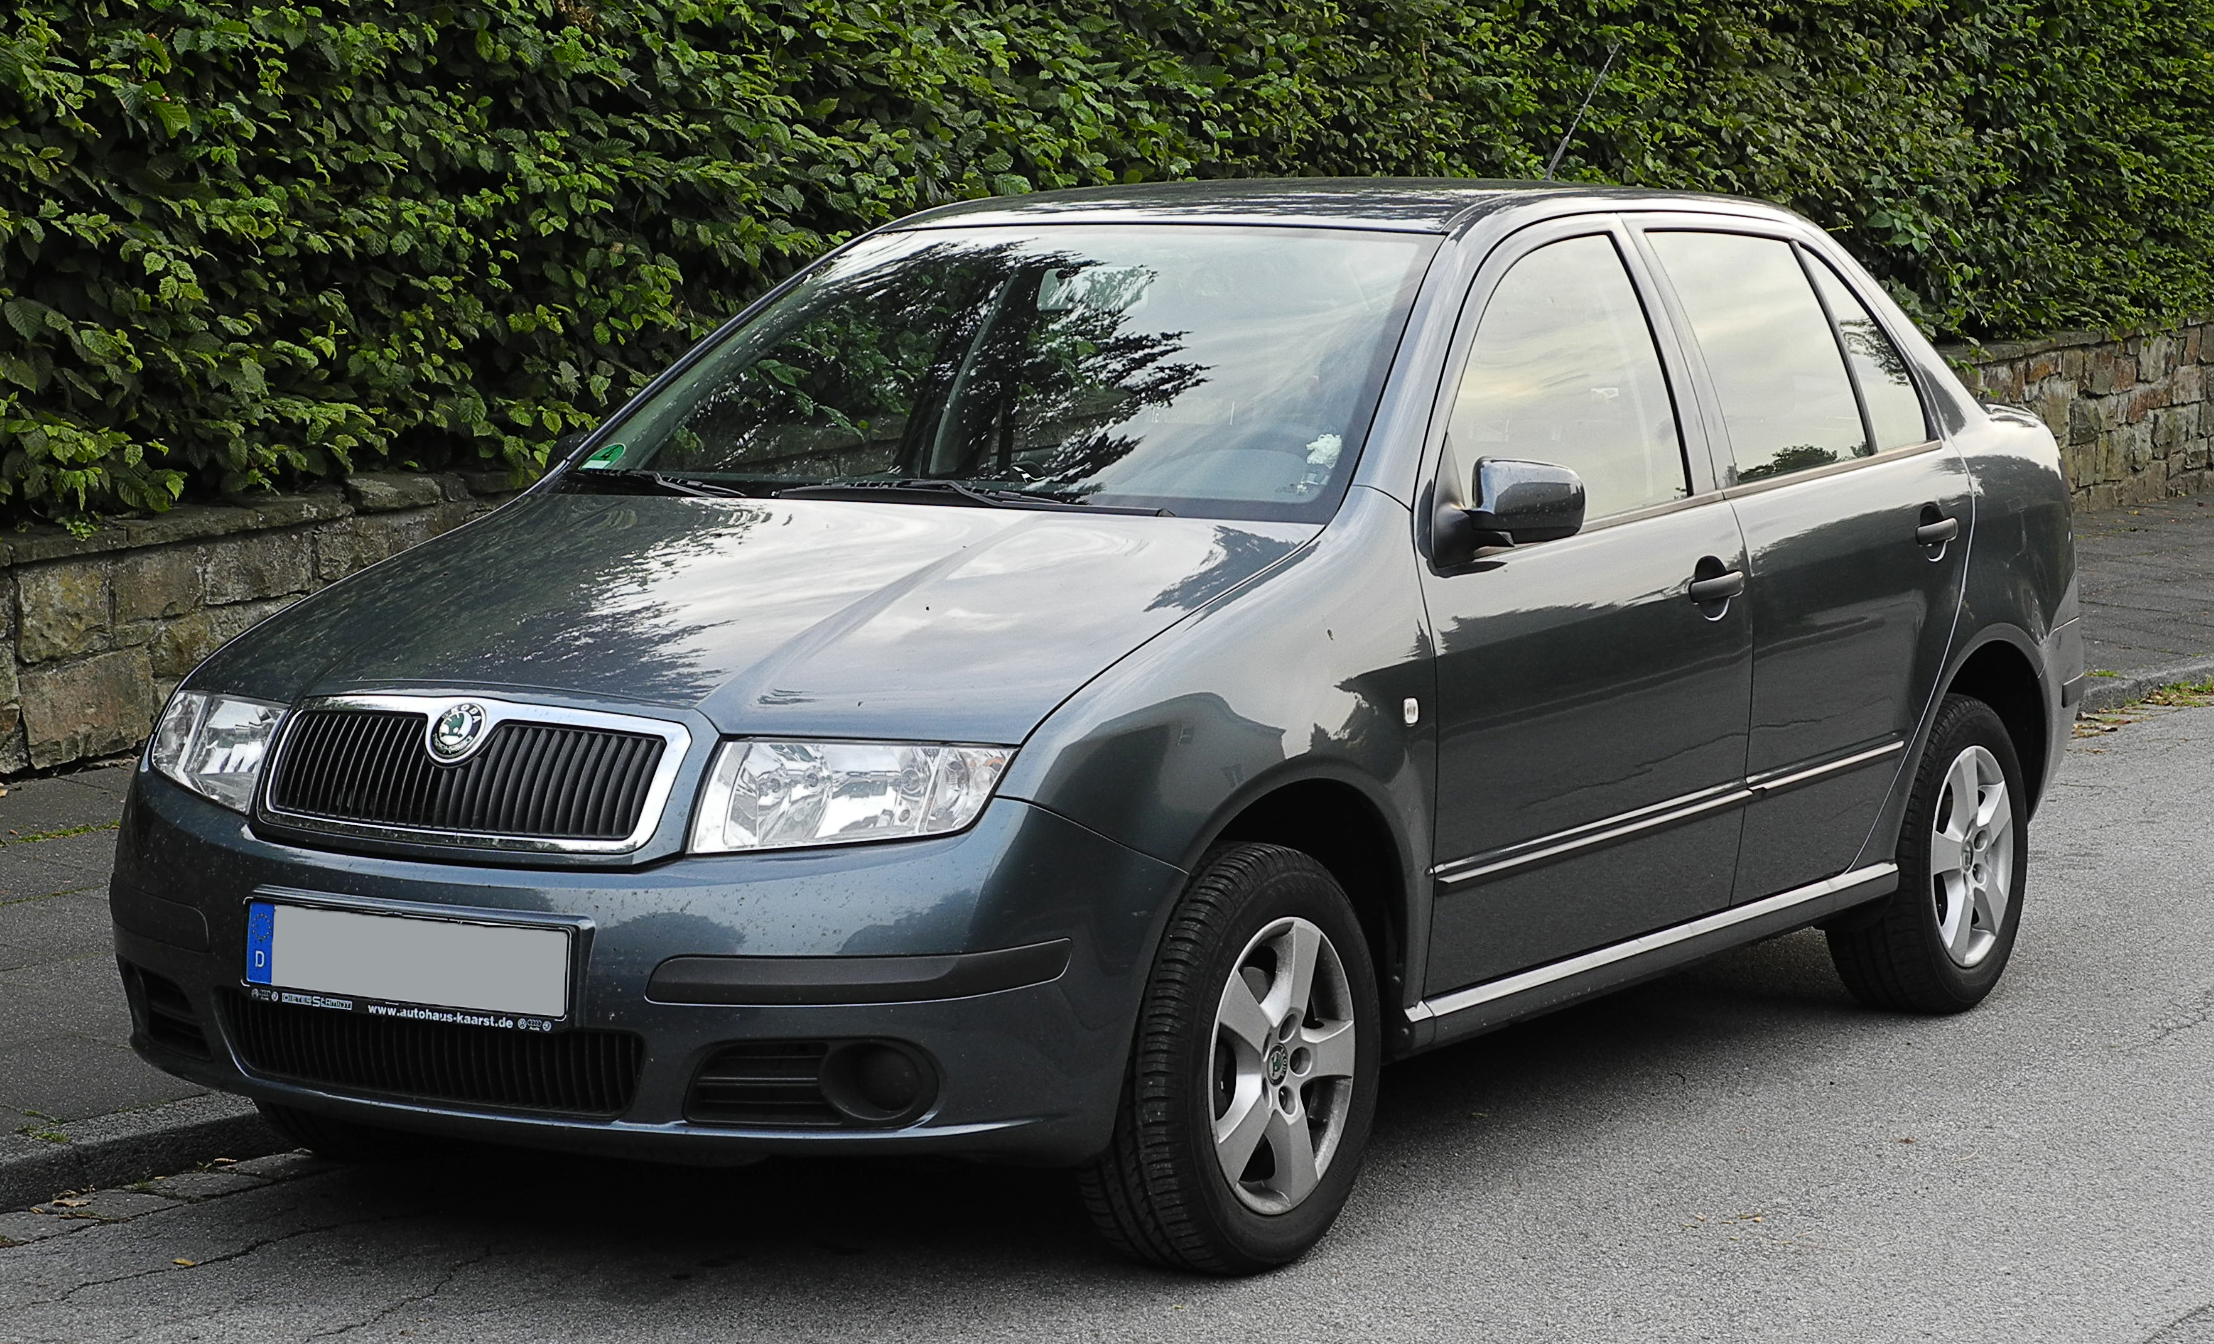 file skoda fabia sedan 1 4 16v i facelift frontansicht 15 juni 2011 w. Black Bedroom Furniture Sets. Home Design Ideas